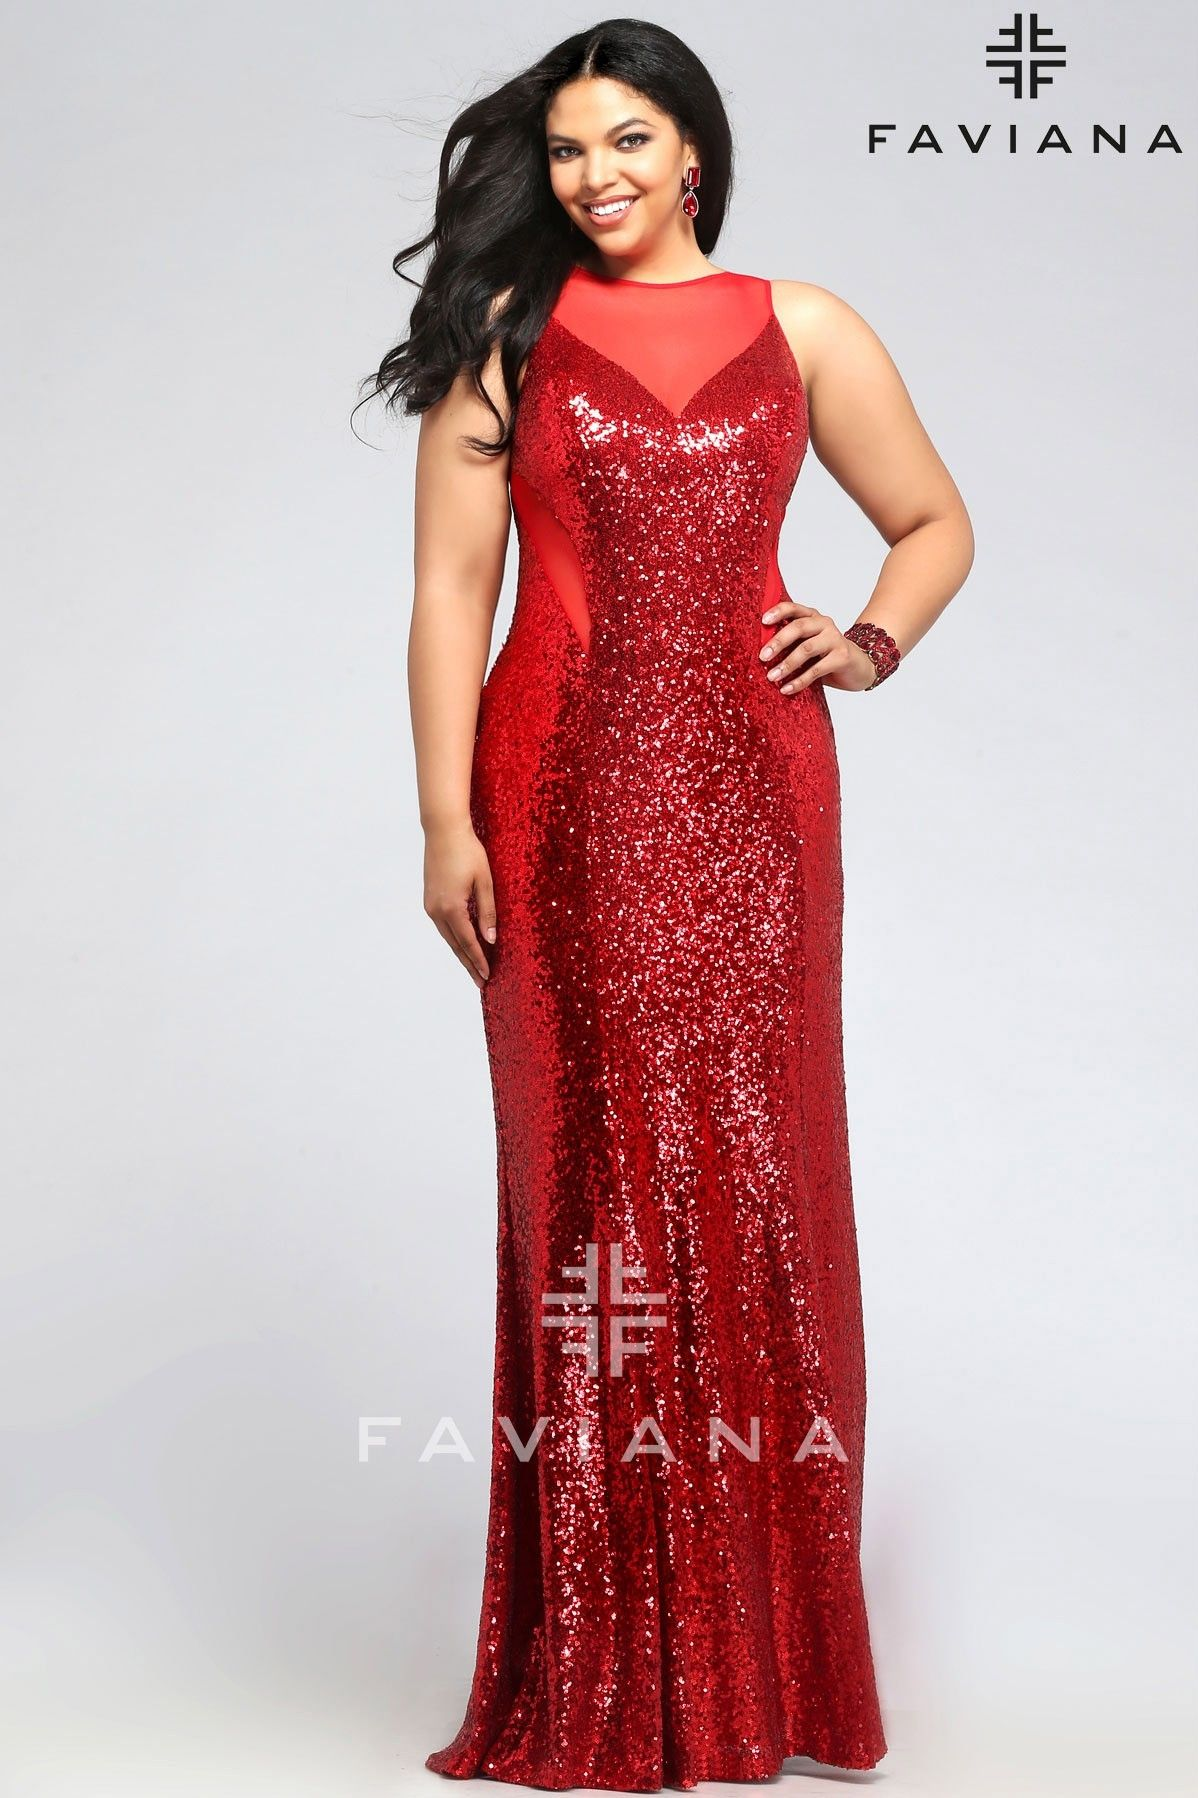 6bd4b00cd56b6 Faviana 9357 Red Sequins Faviana Curve Full Figure Plus Size Prom Dress -  #ipaprom